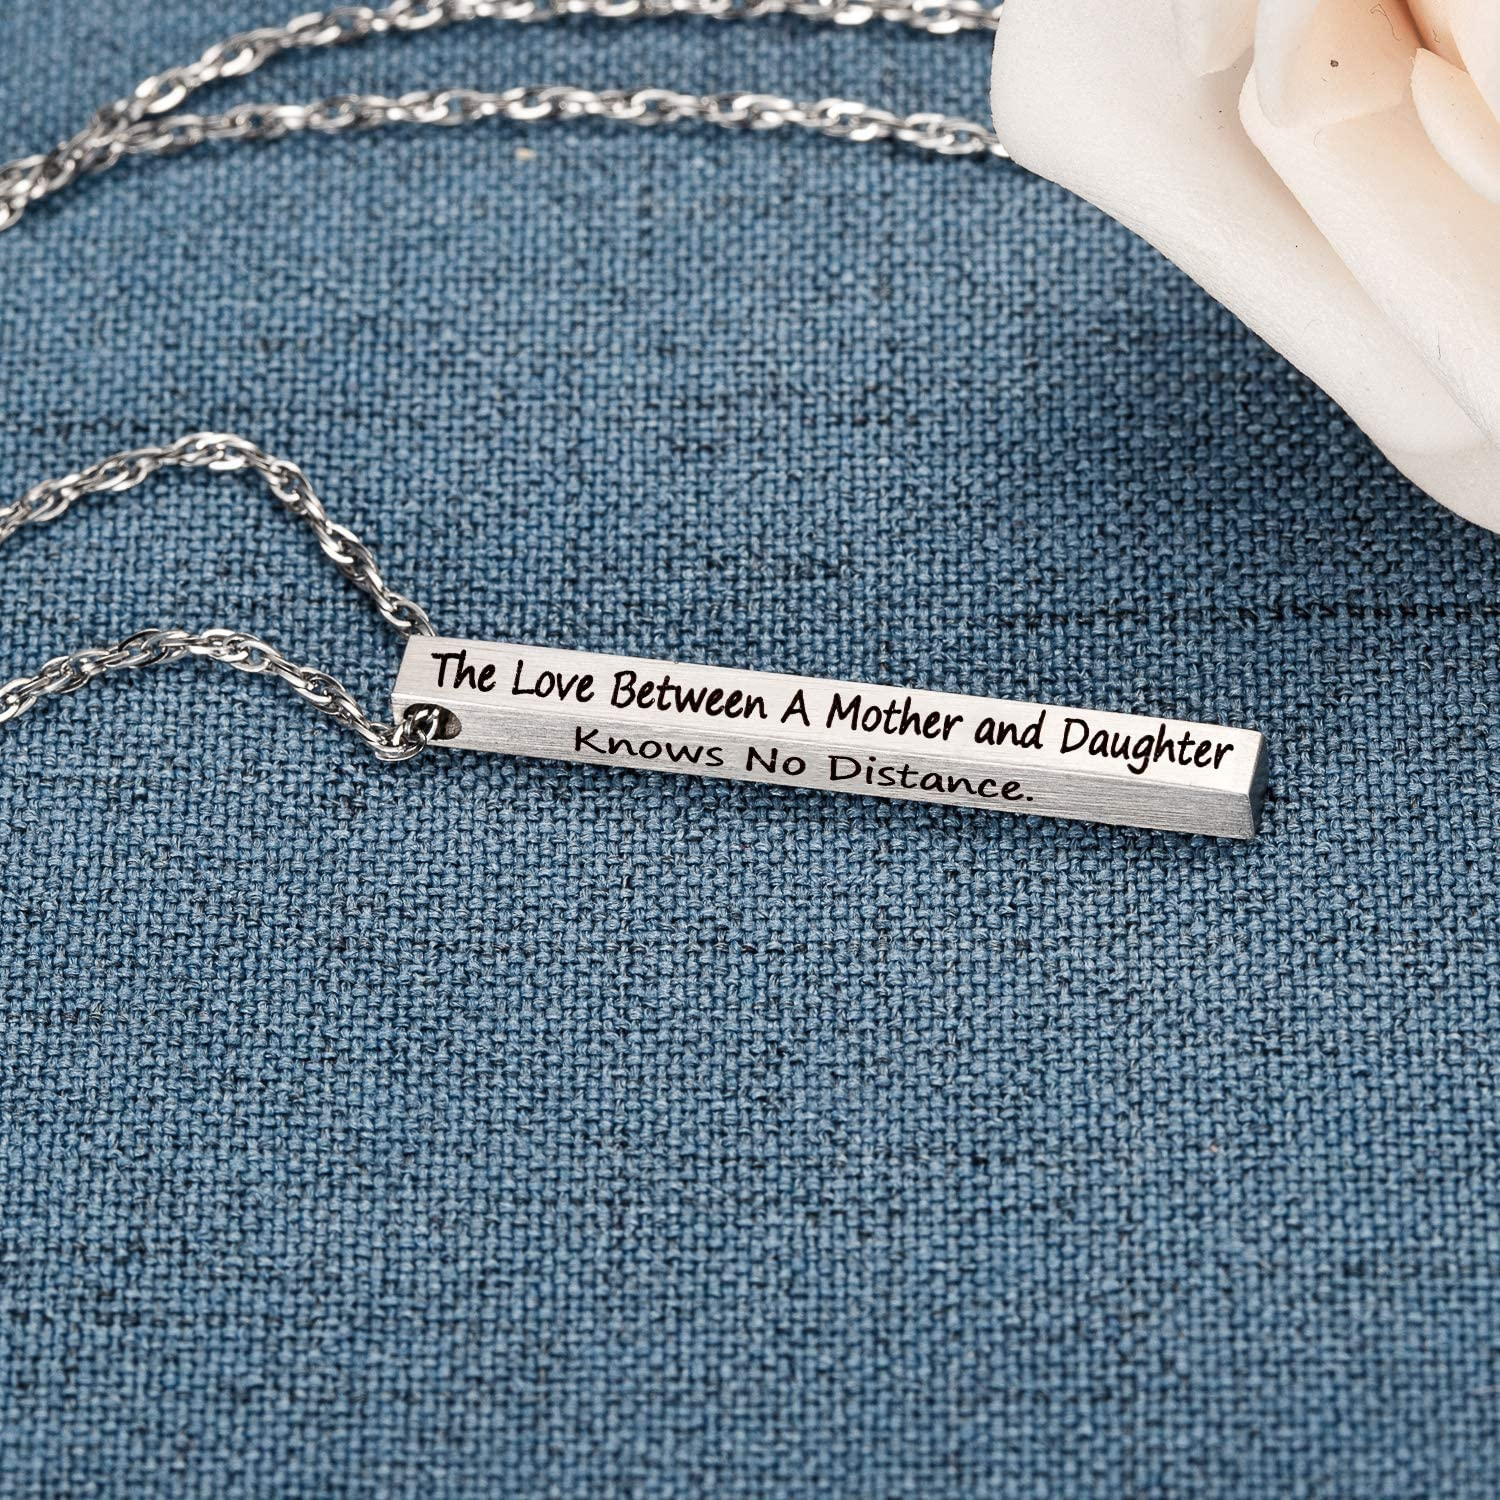 HusbandAndWife Long State Necklace Arizona and Colorado The Love Between Mother and Daughter Knows No Distance Funny Necklace Mom and Daughter Gifts for Long Distance Mom Jewelry for Women